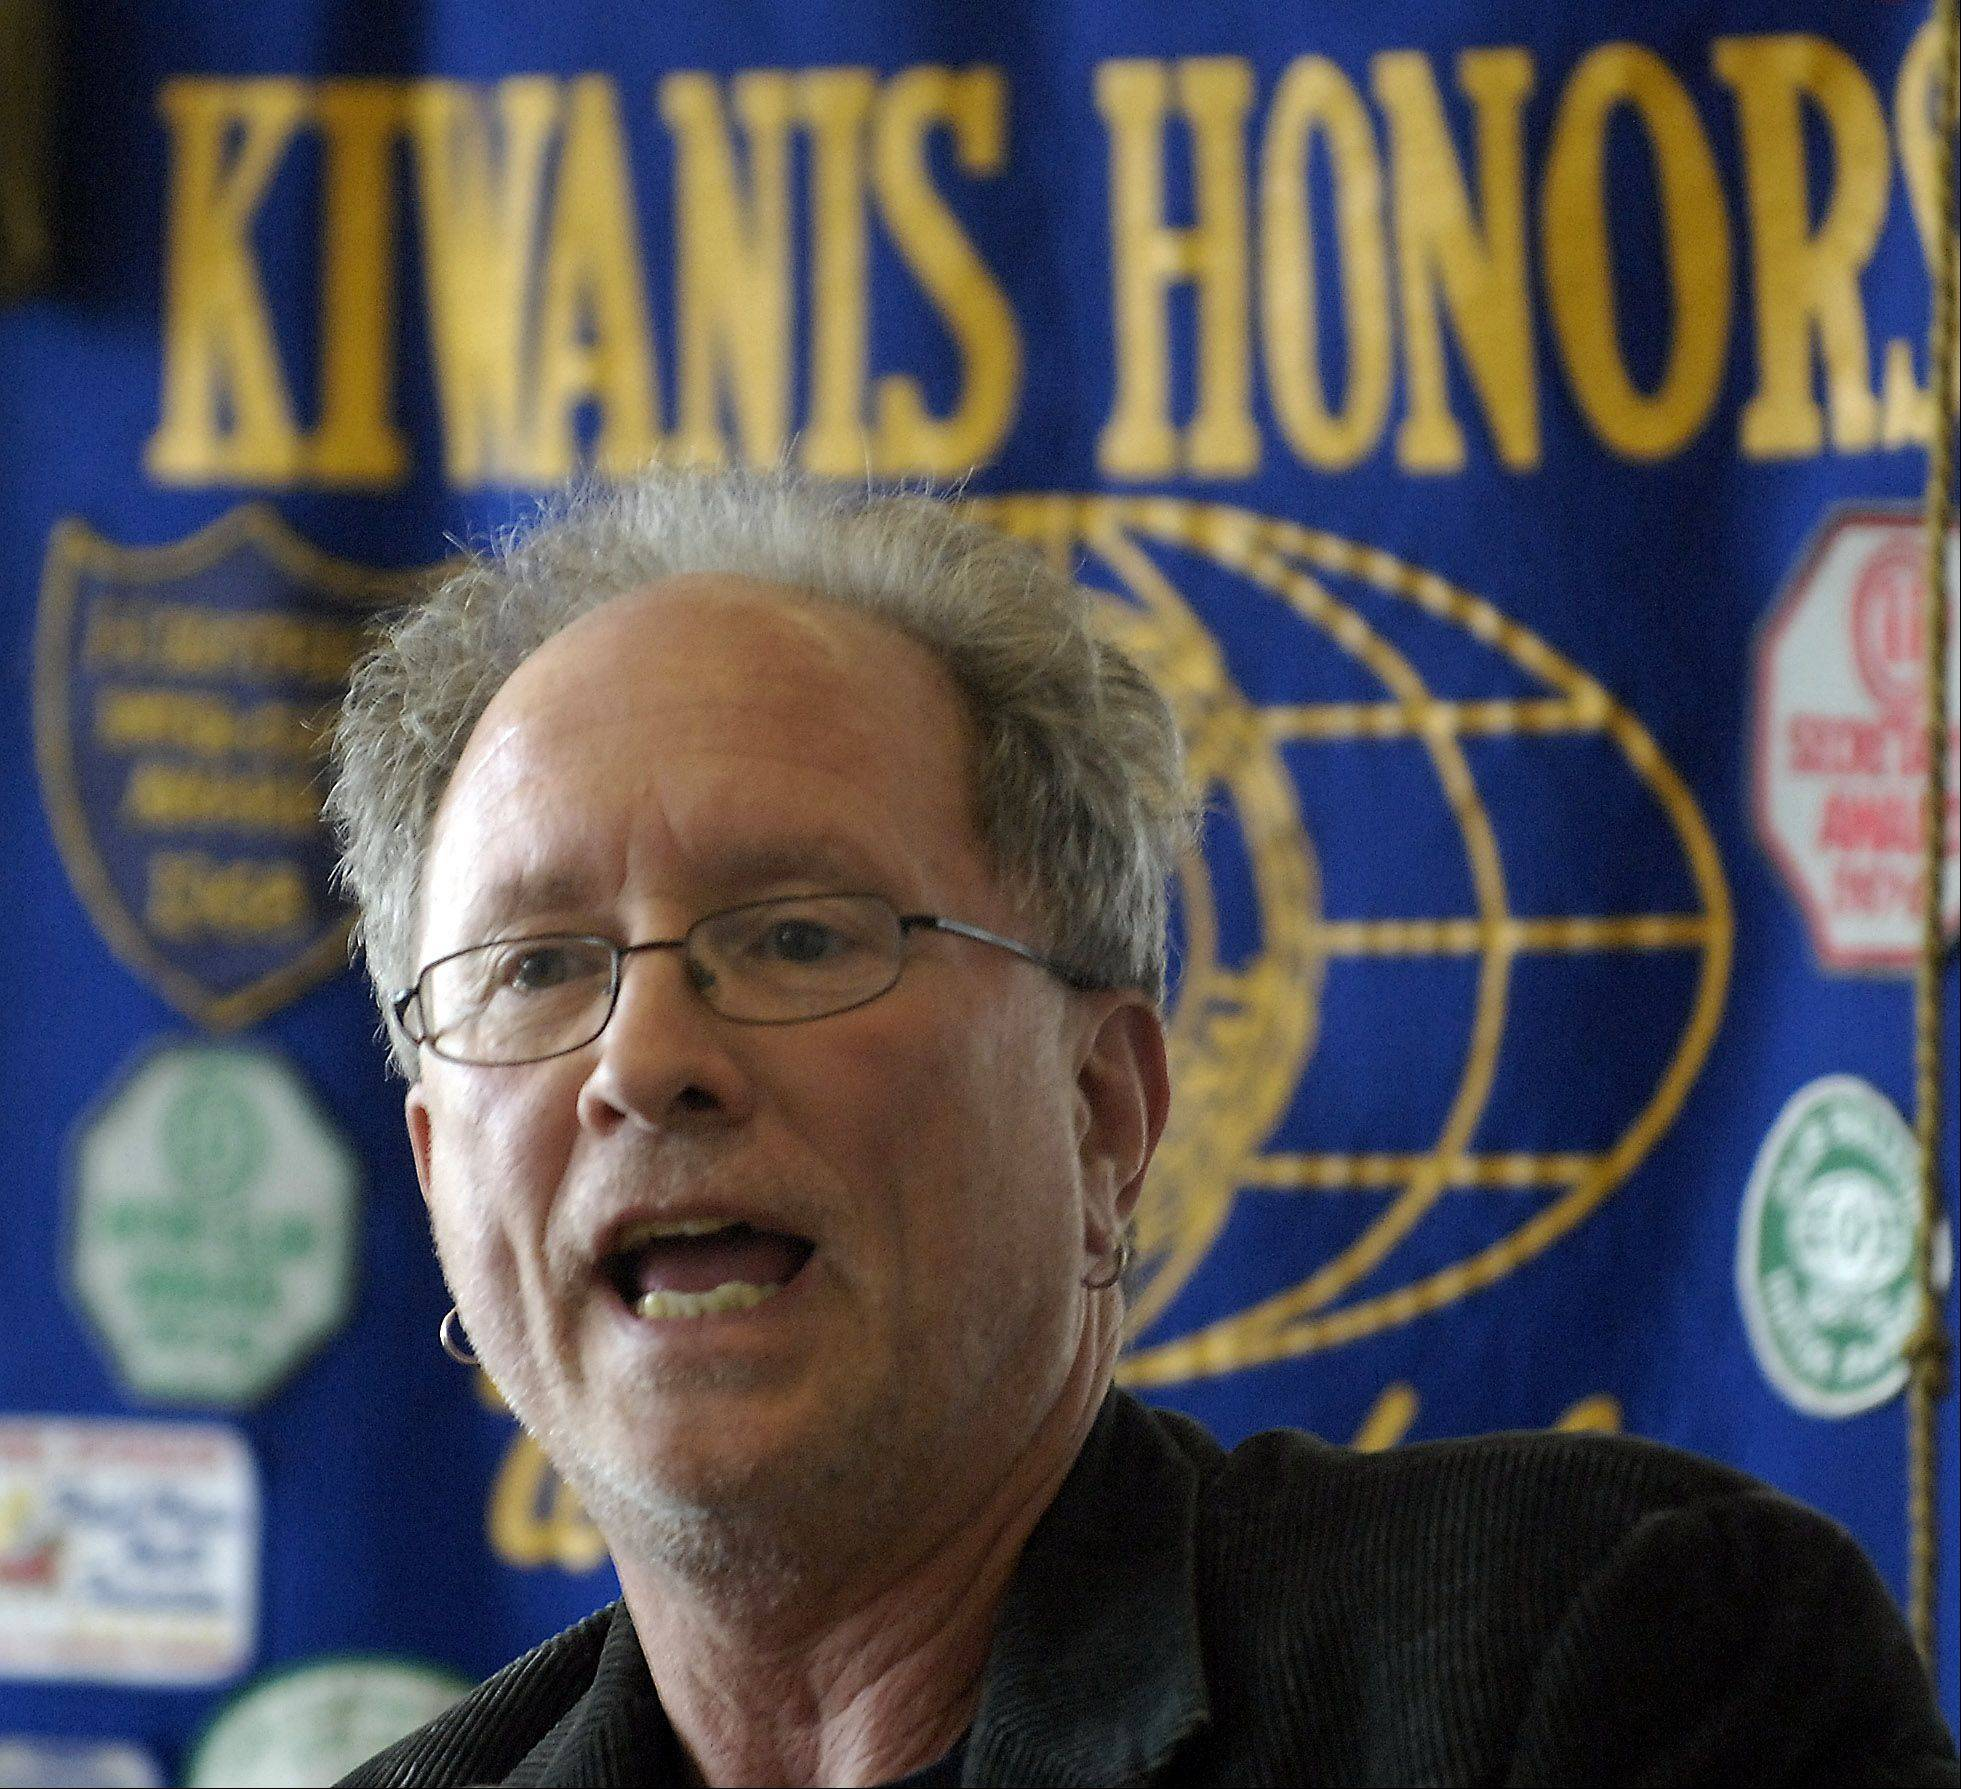 William Ayers invitation to speak this week as part of Elgin Community College's Humanities Center Speakers Series has led to criticism of the school.